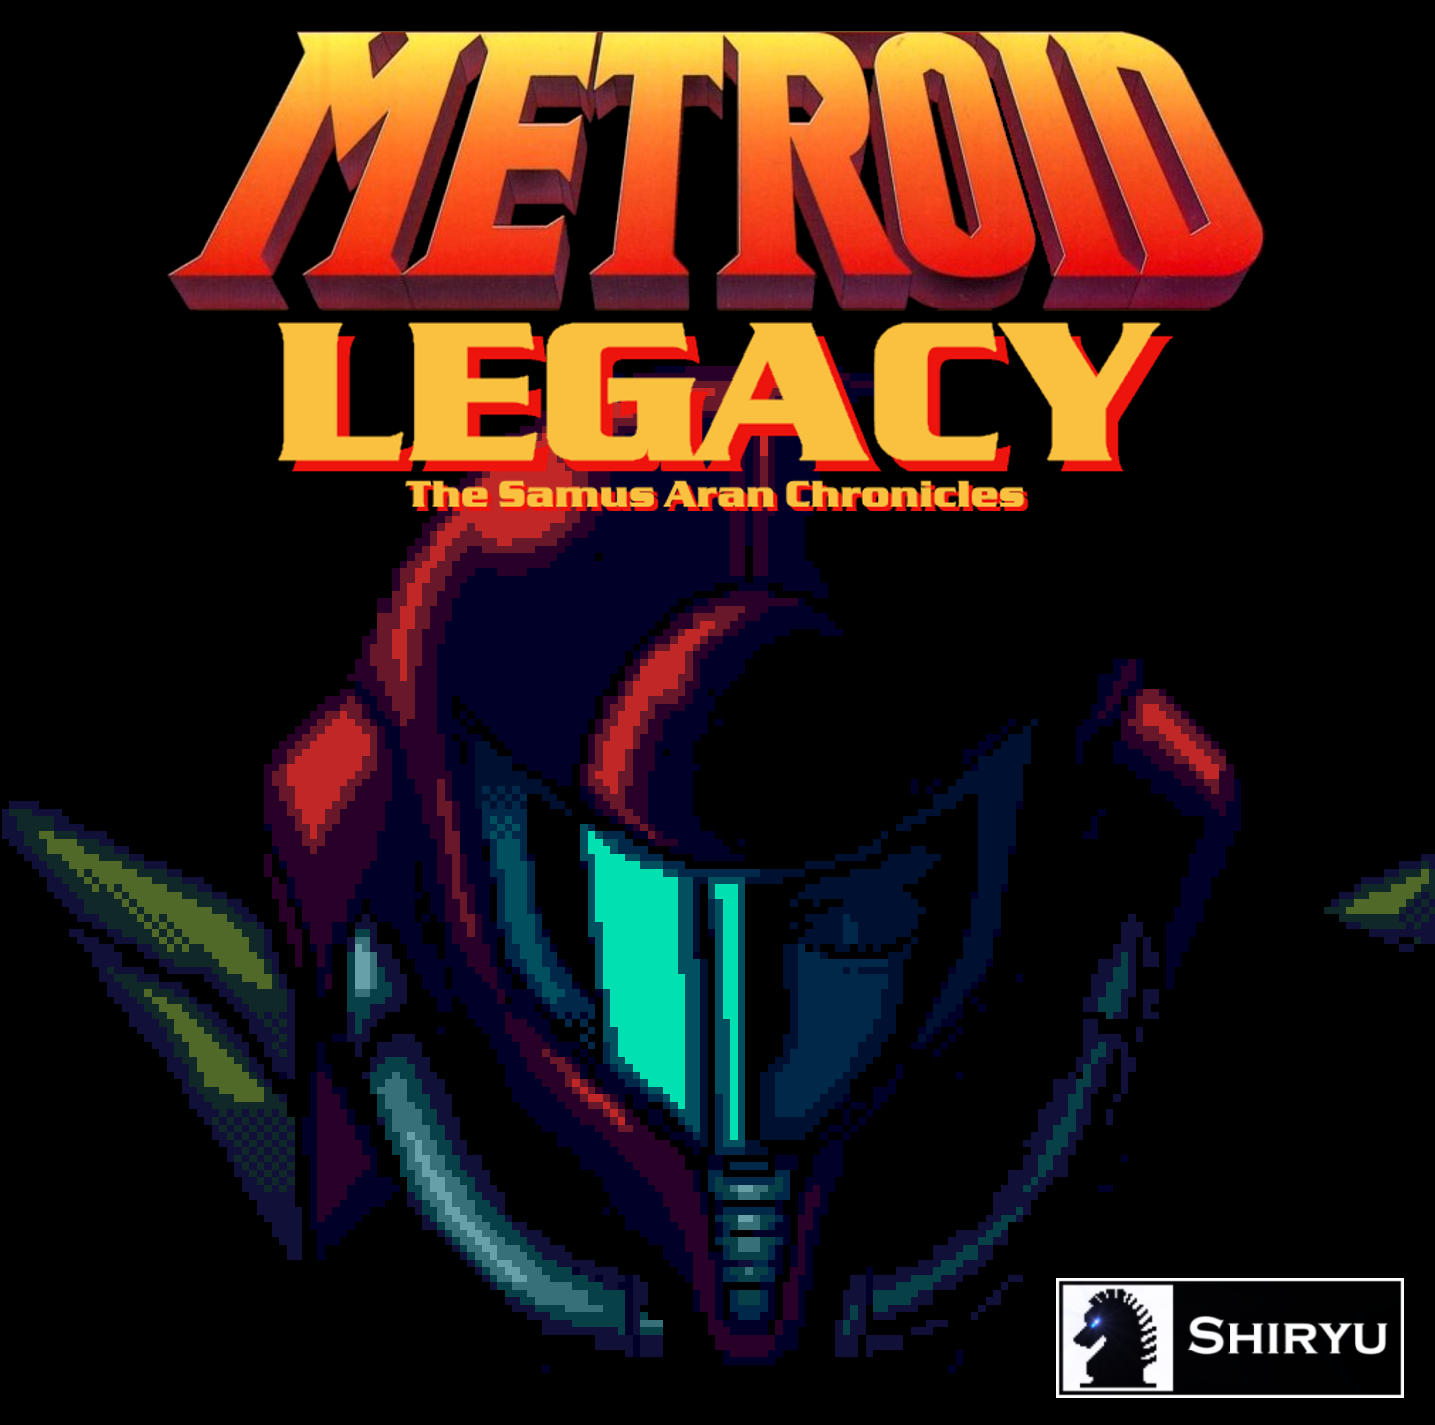 CD-1-MetroidLegacy-Front.png